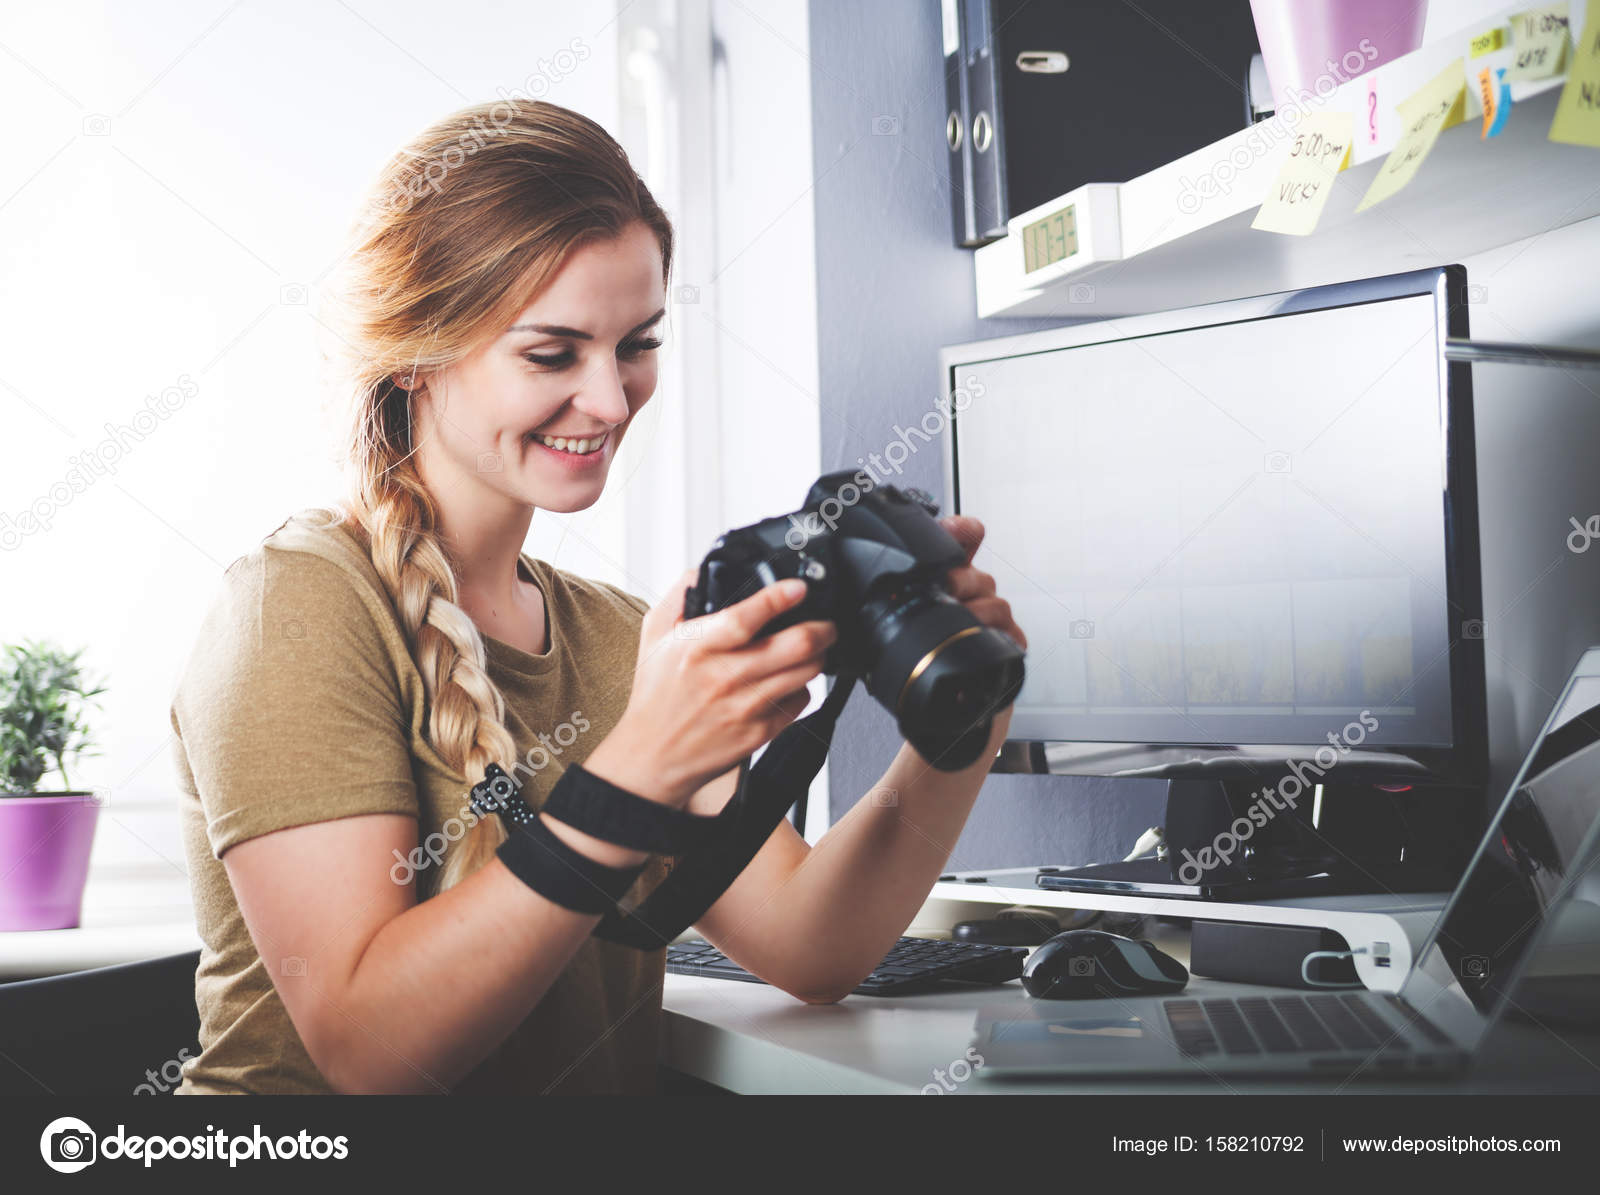 Freelance photographer woman with camera at home office